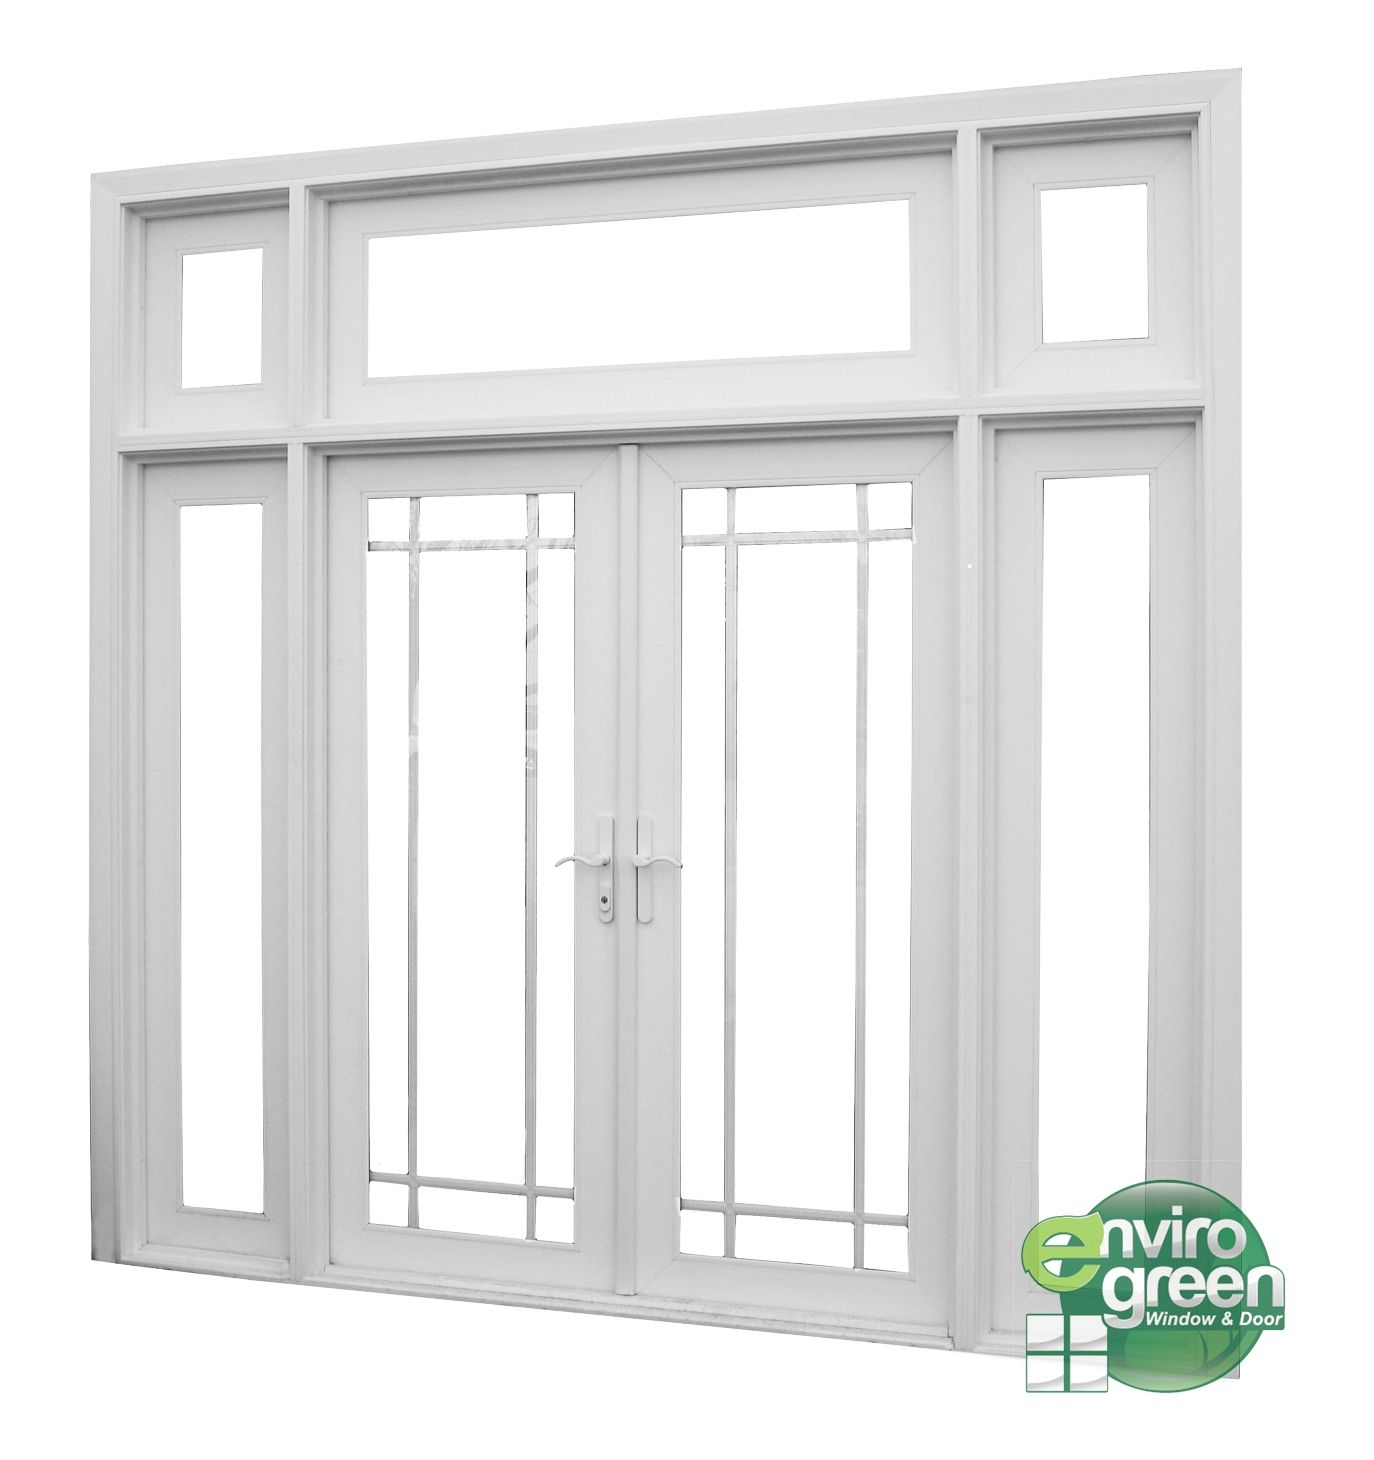 Double Garden Door With Transom And Sidelights Cửa Kinh Cửa Sổ Xay Dựng